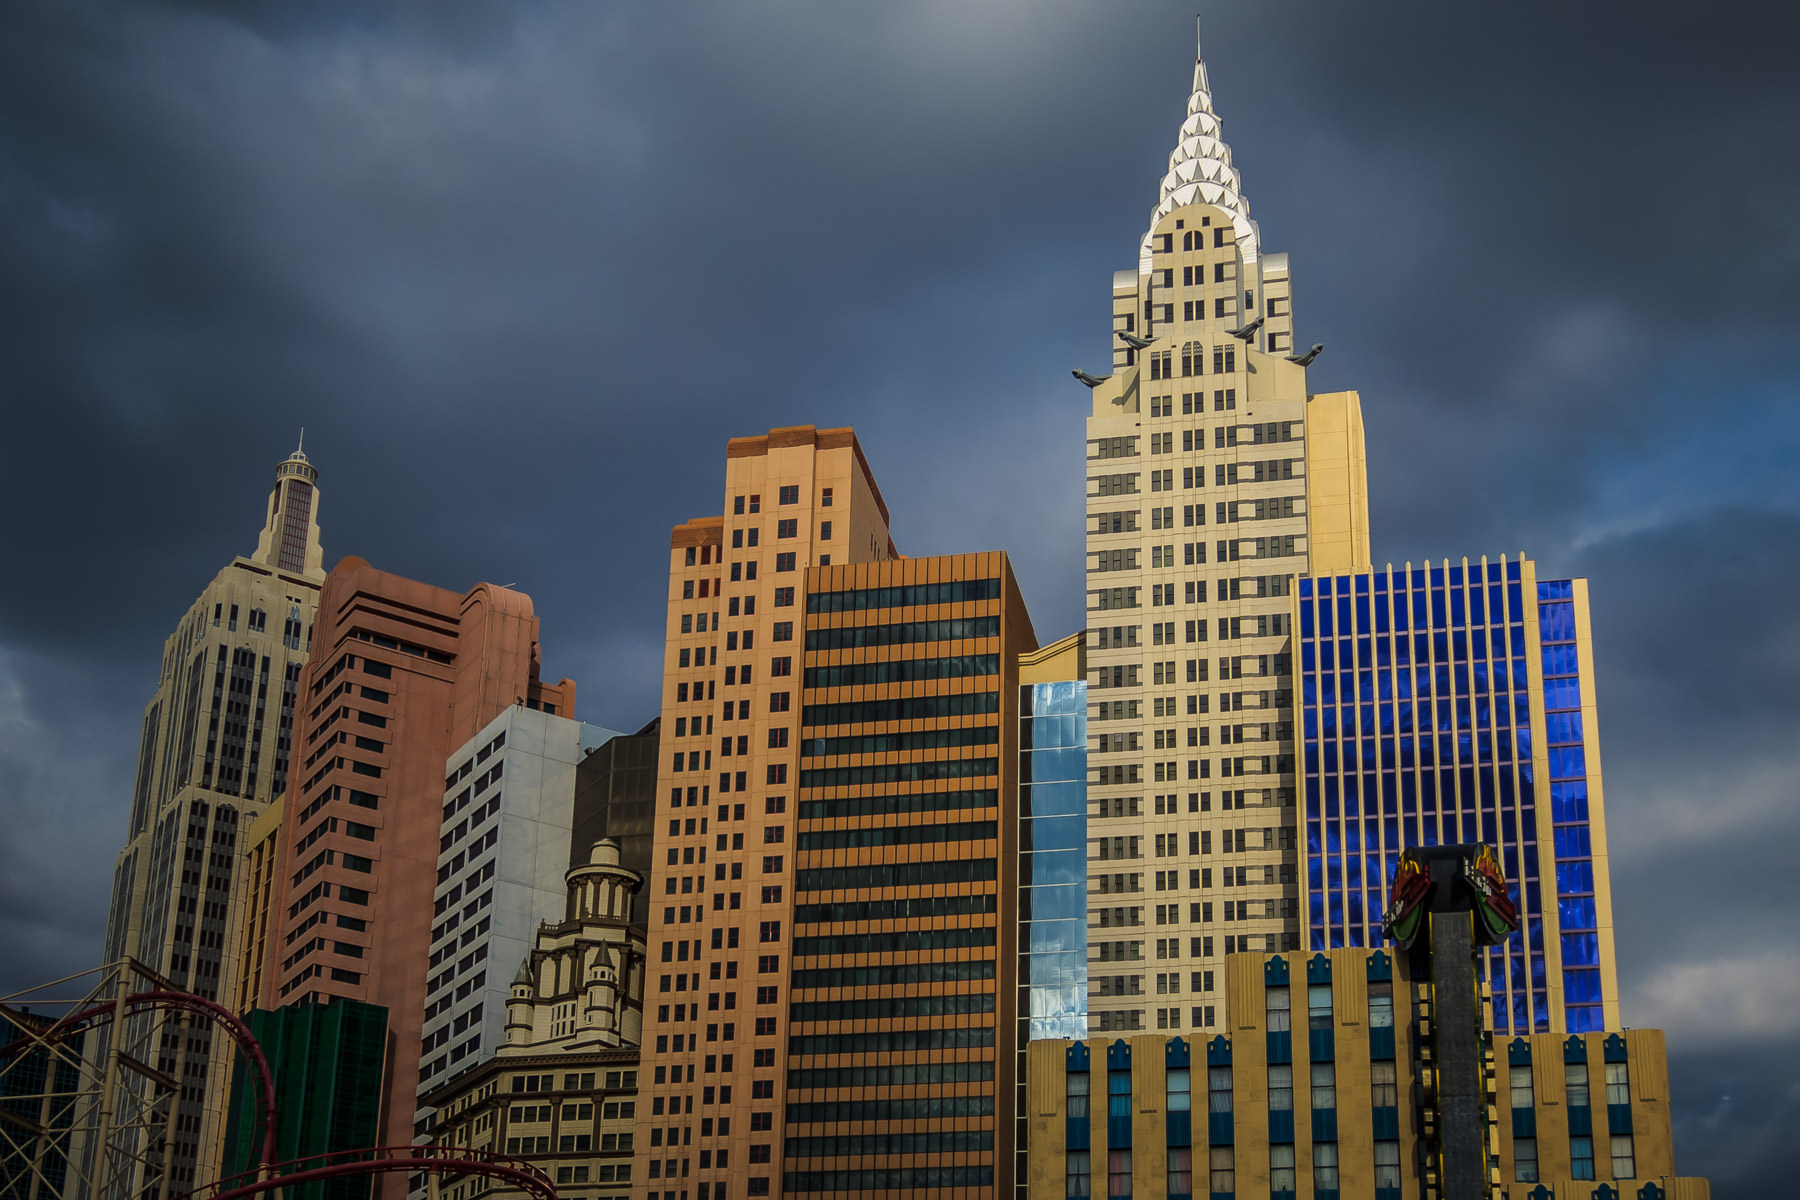 Storm clouds form above New York New York Hotel and Casino, Las Vegas.